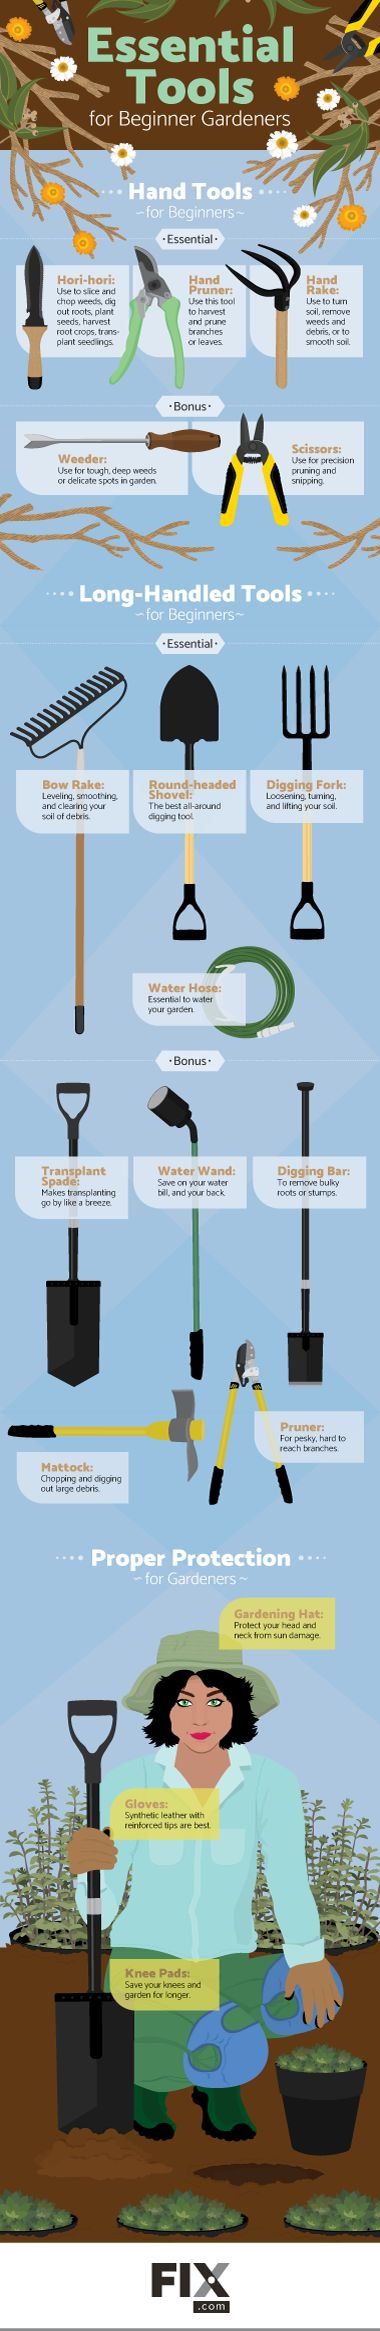 What Gardening Tools a Beginner Needs | Fix.com